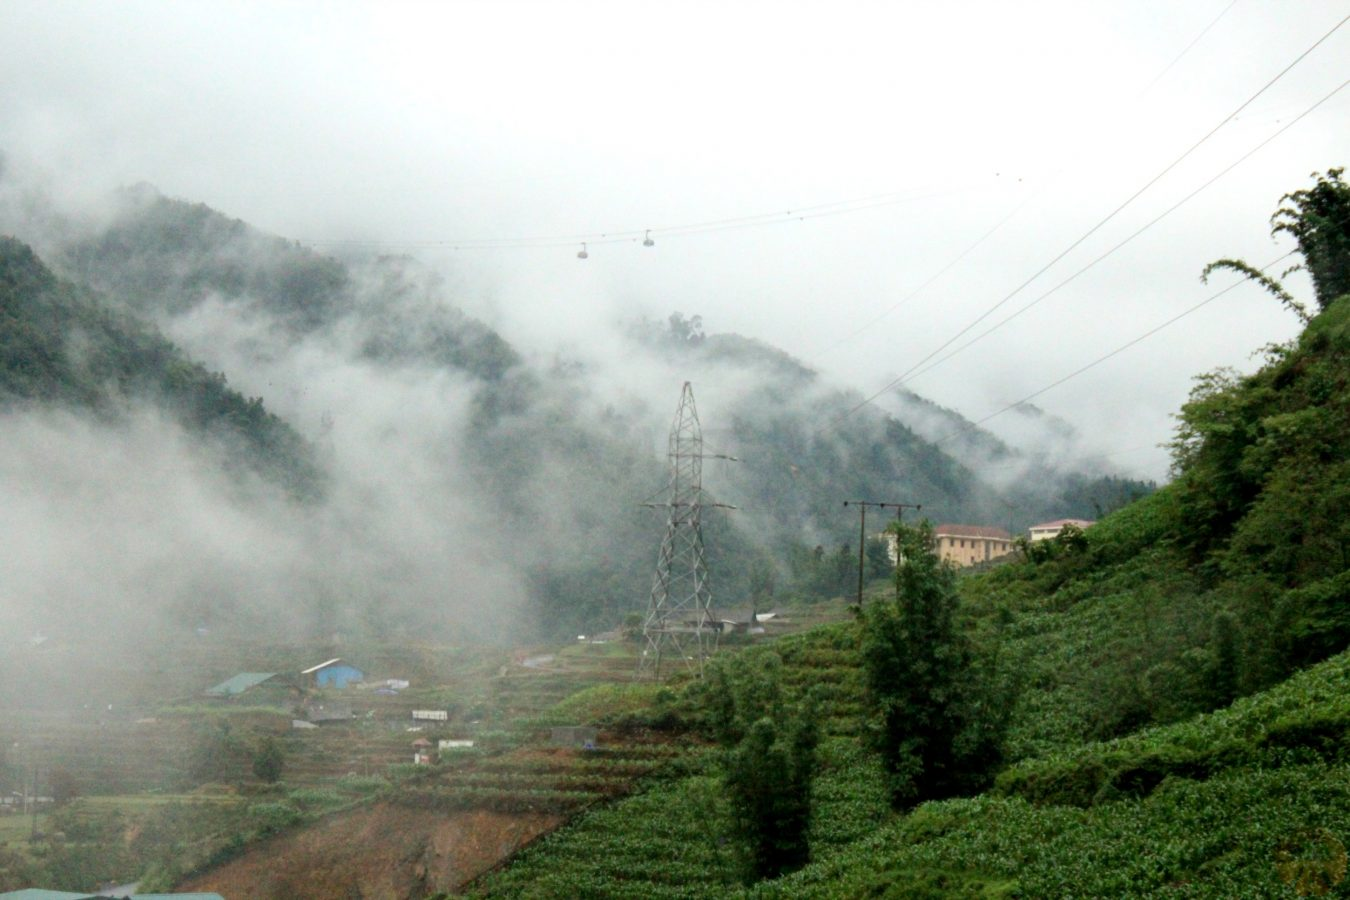 Cable car to Fansipan mountain